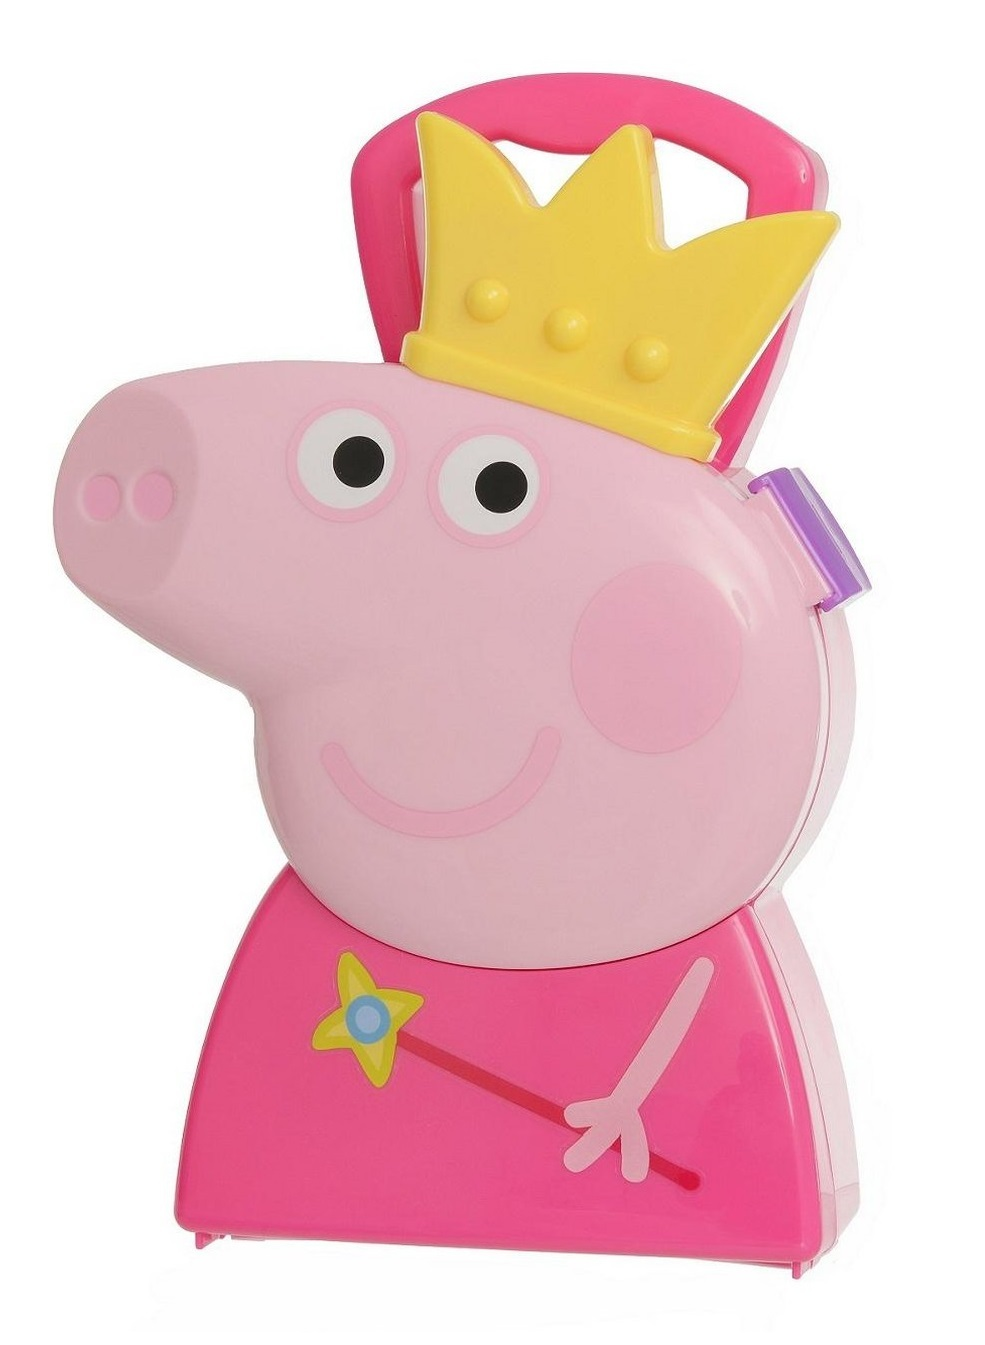 Peppa Pig: Roleplay Set - Jewellery Case image